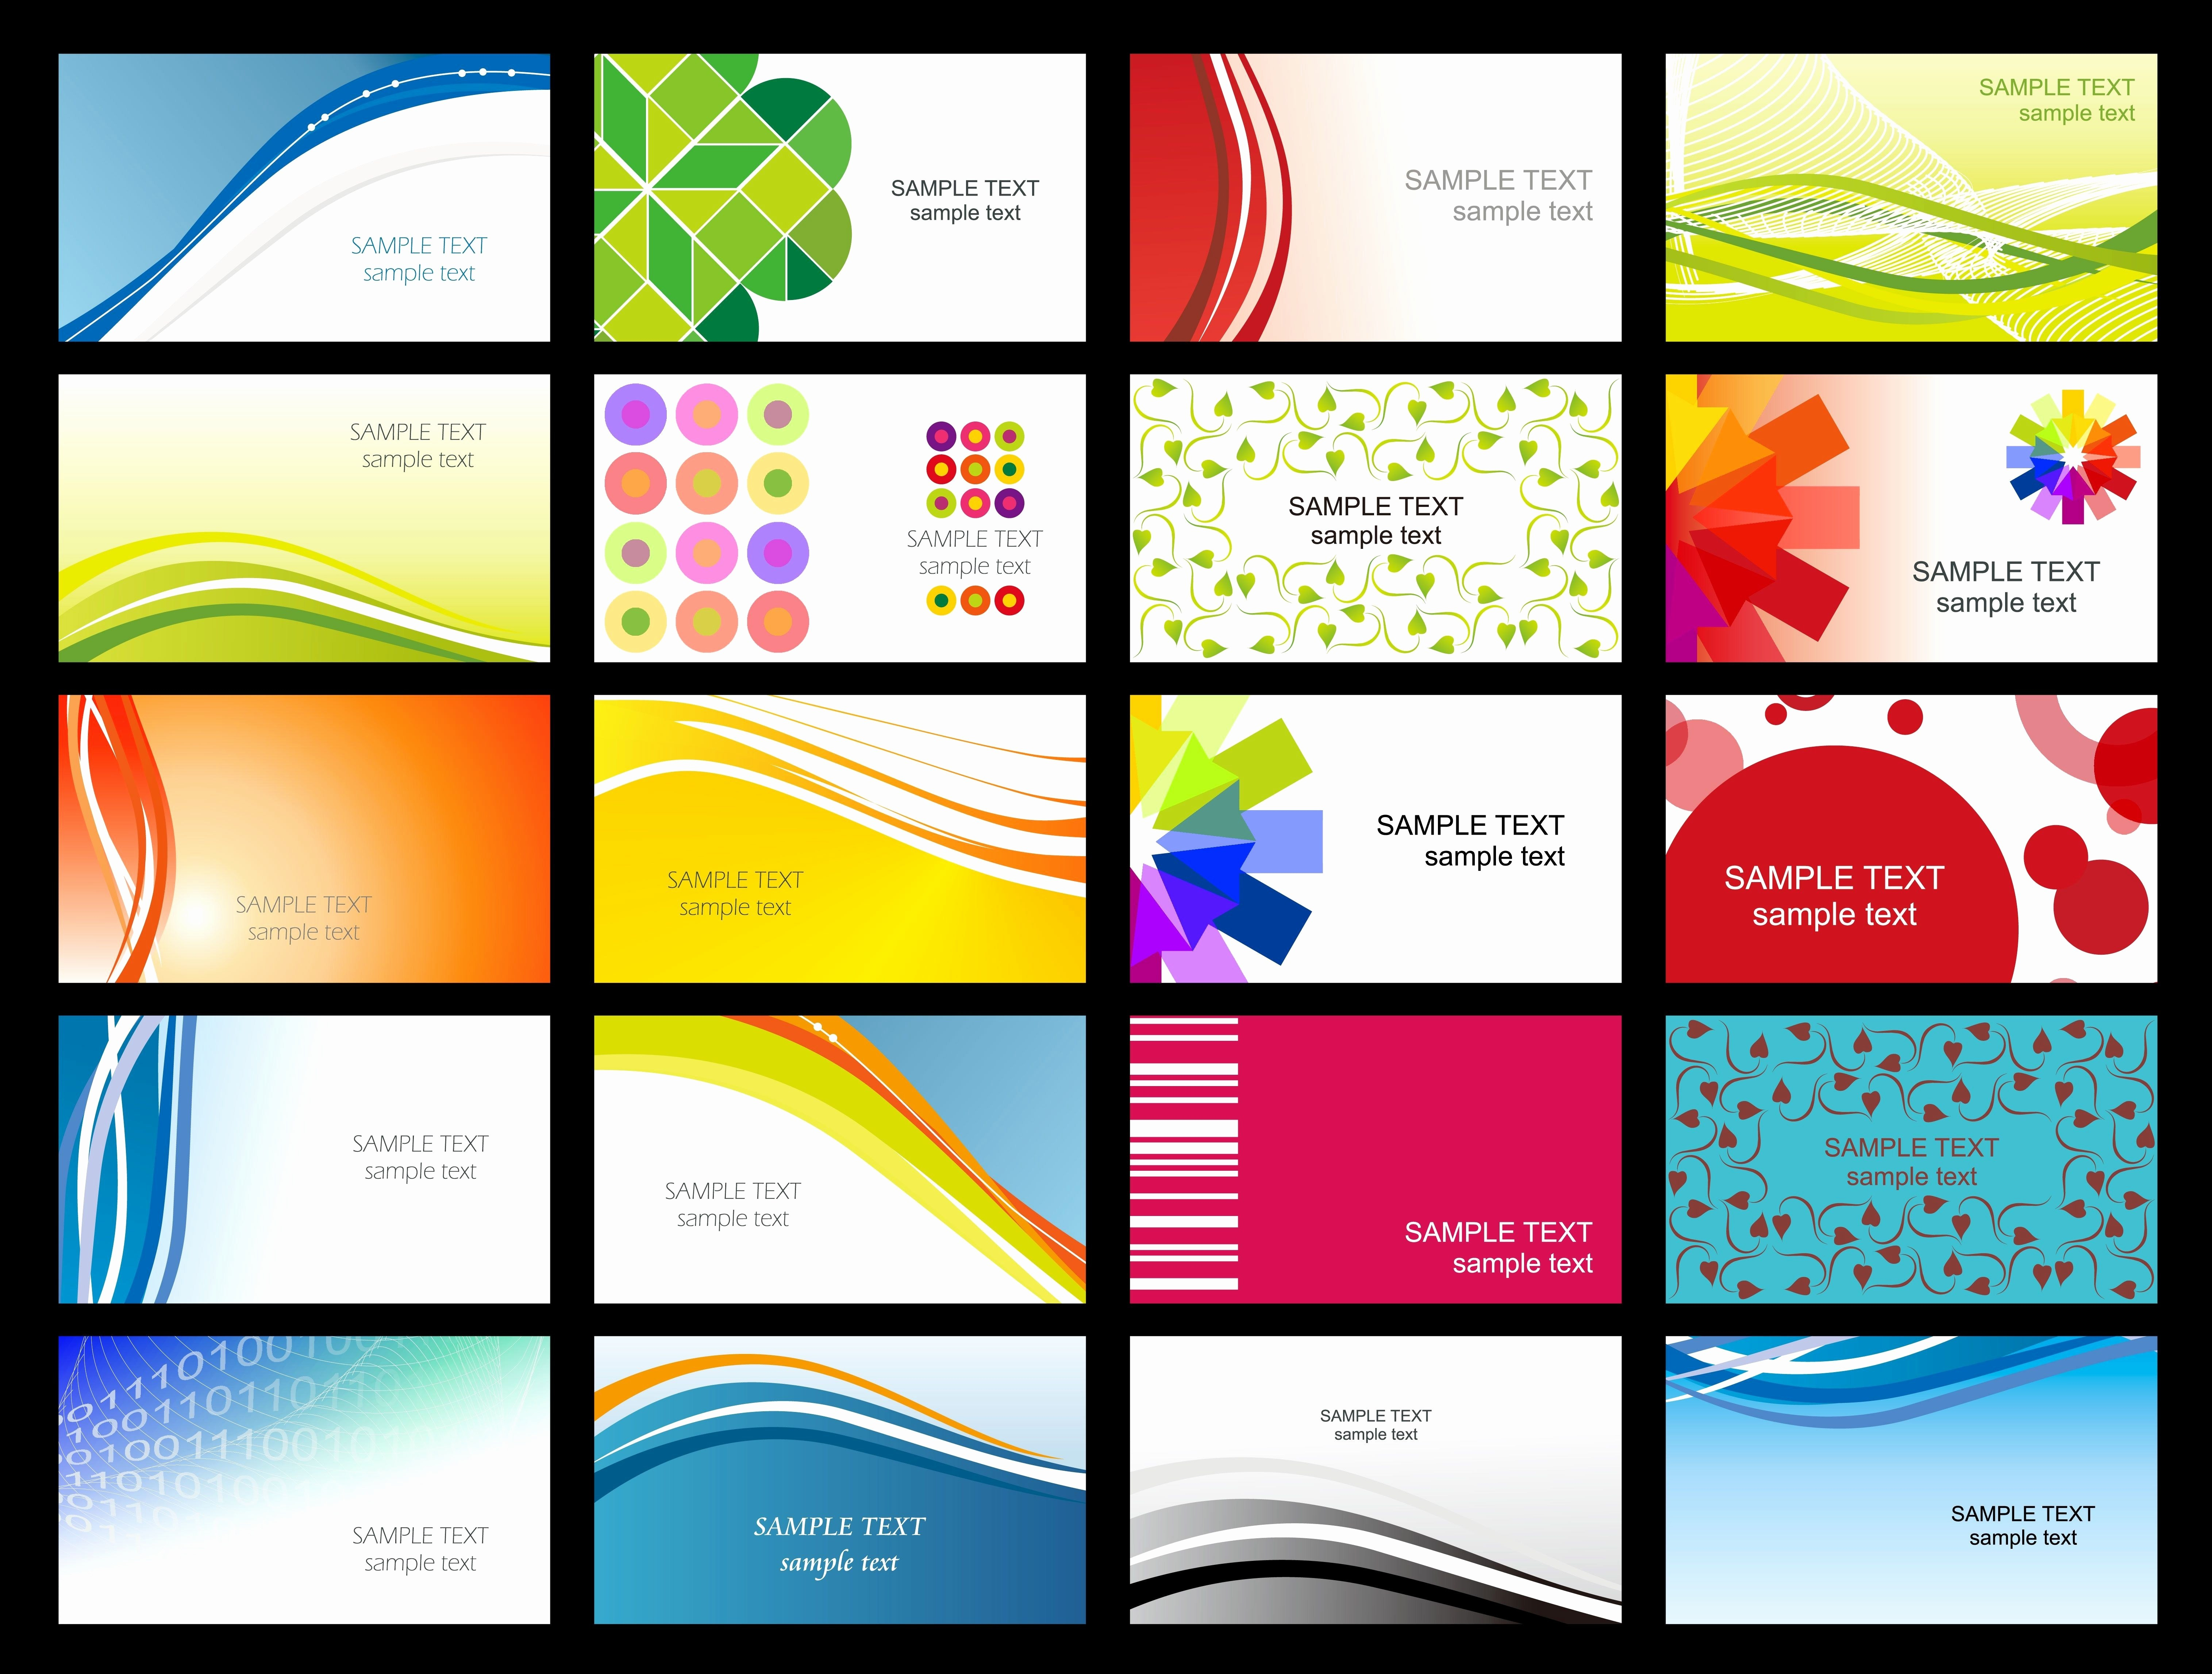 Free Printable Business Cards Templates Elegant   Free Business With Regard To Free Template Business Cards To Print